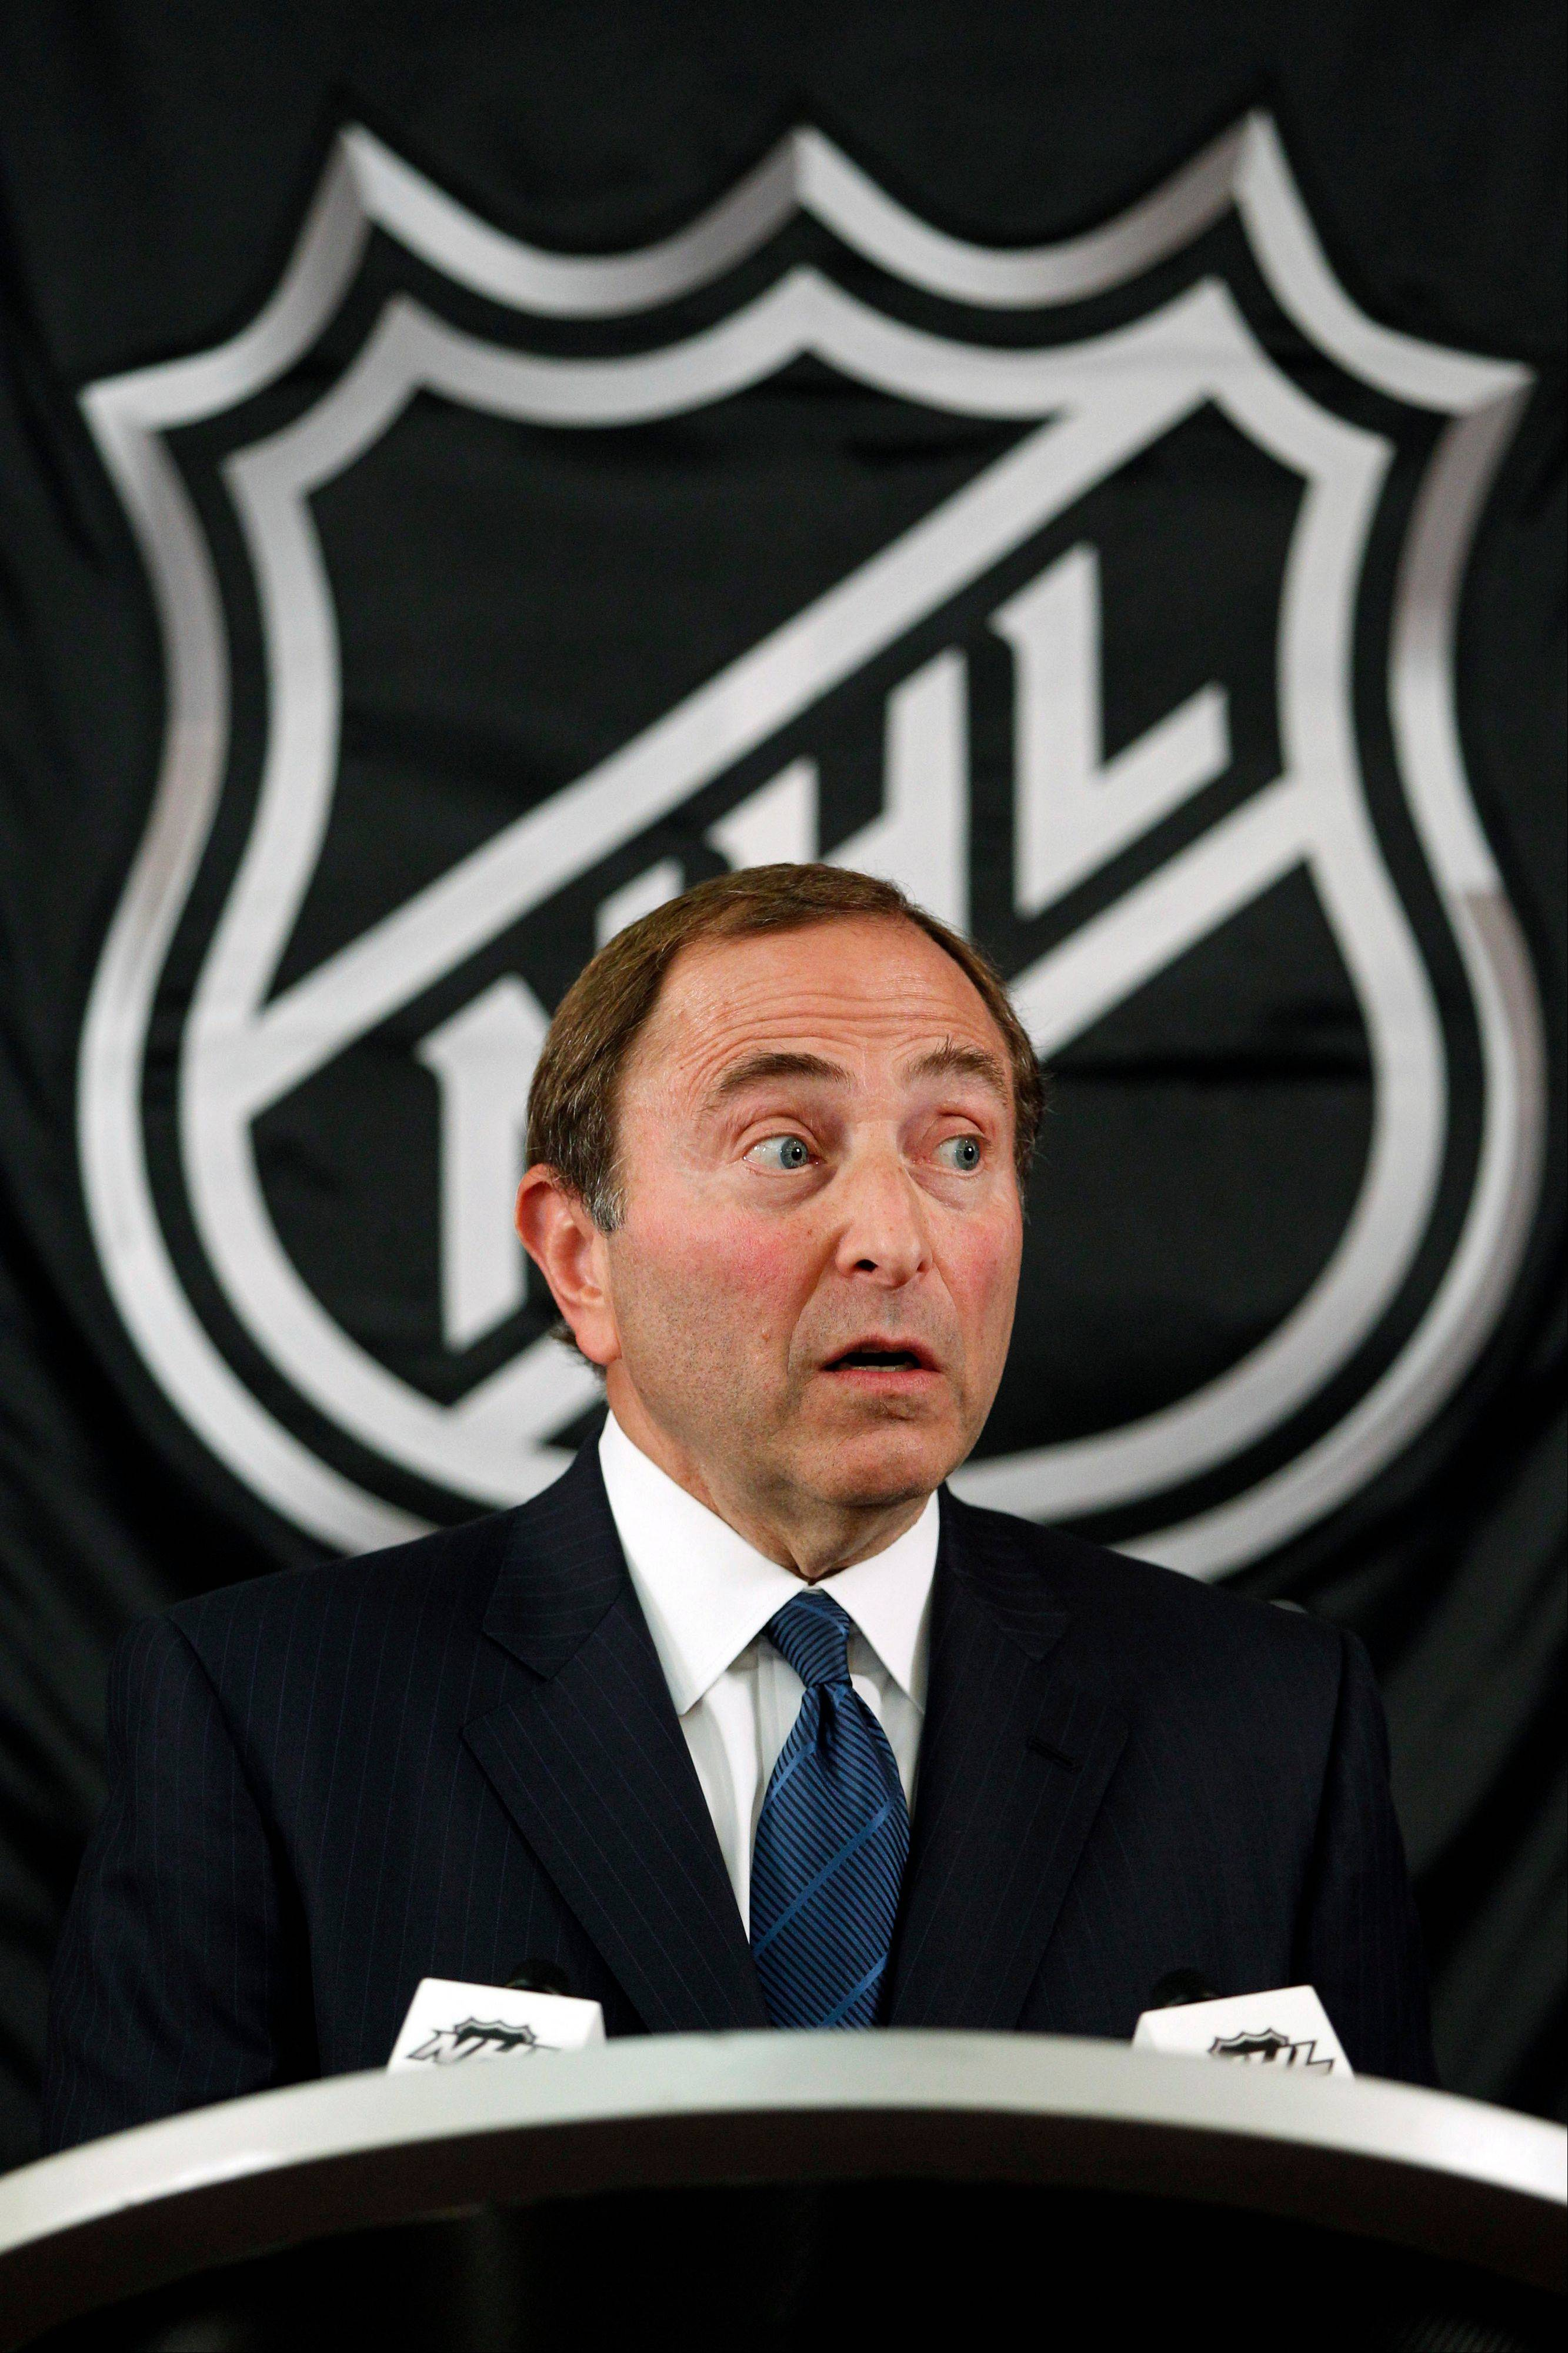 If NHL Commissioner Gary Bettman said they got it right to end labor strife 2005, why is there another lockout now?